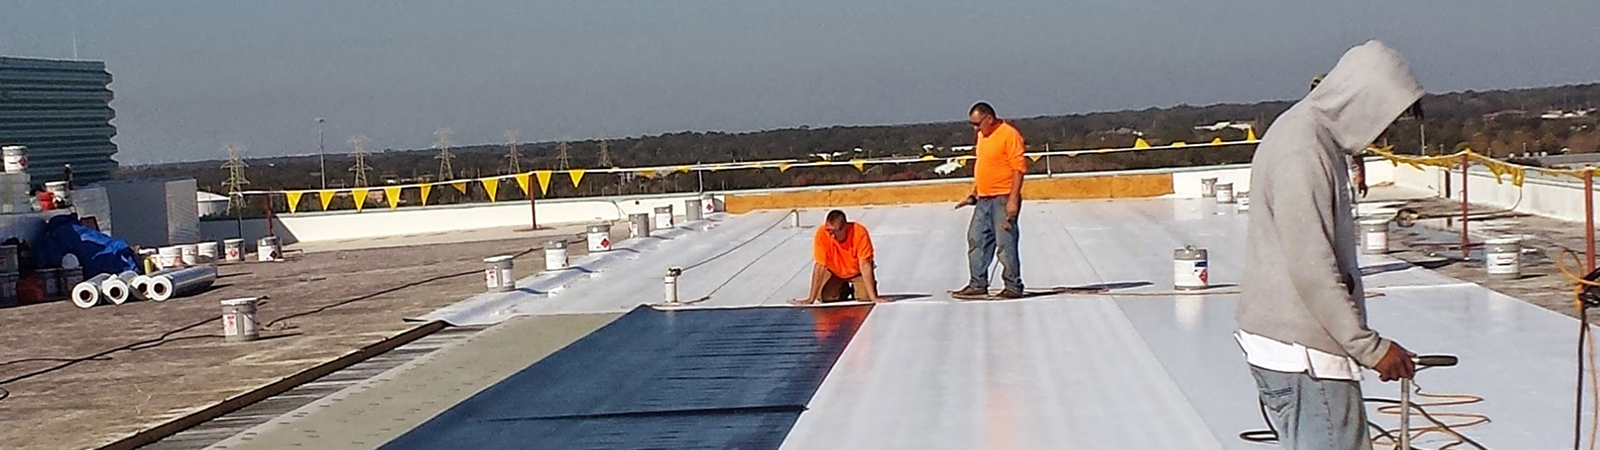 Commercial roof project in Greenwood, CO